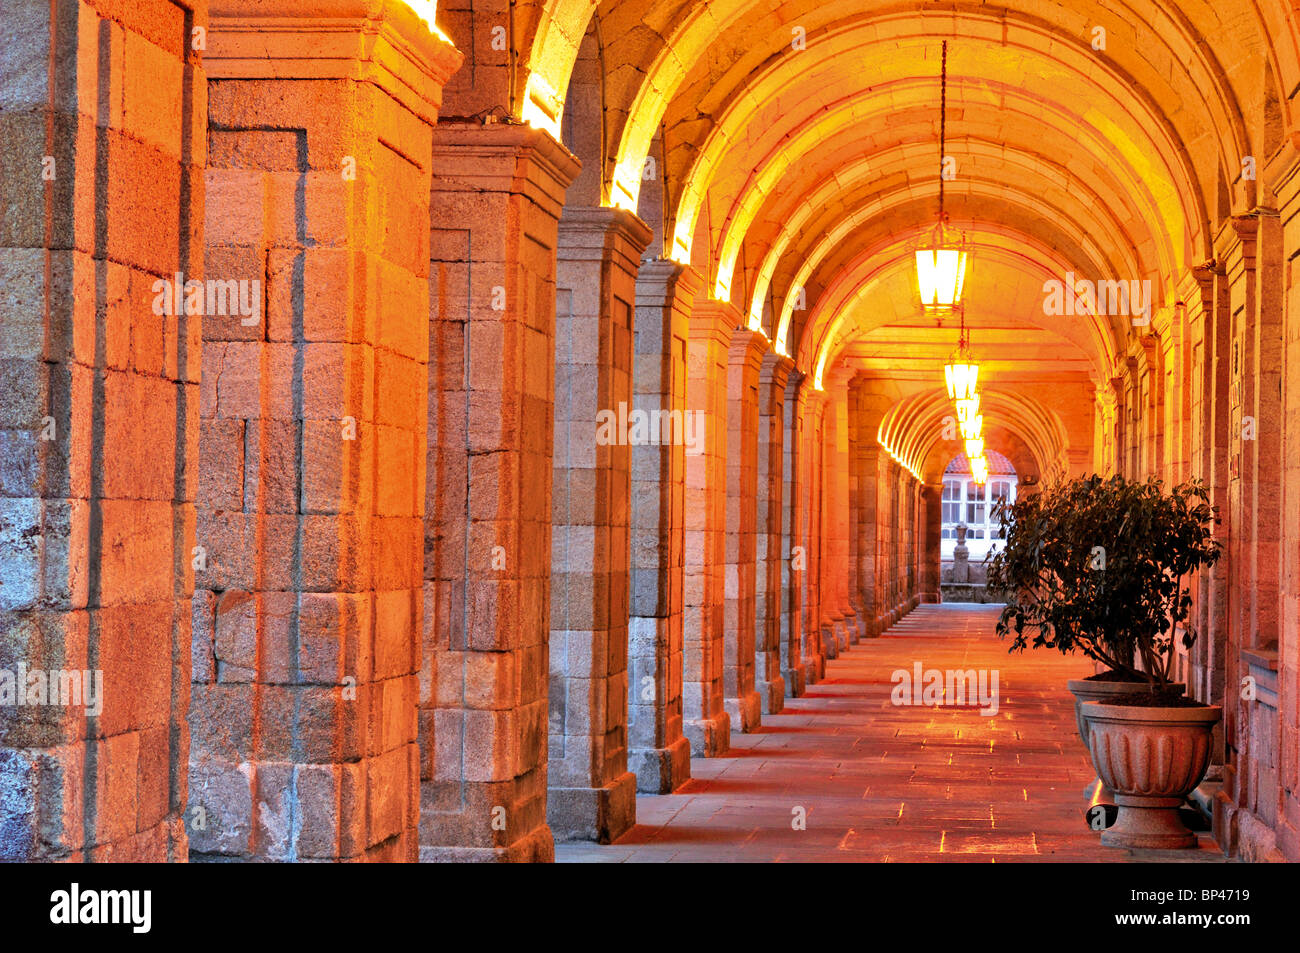 Spain, Galicia: Arcade corridor of the town hall building of Santiago de Compostela Stock Photo